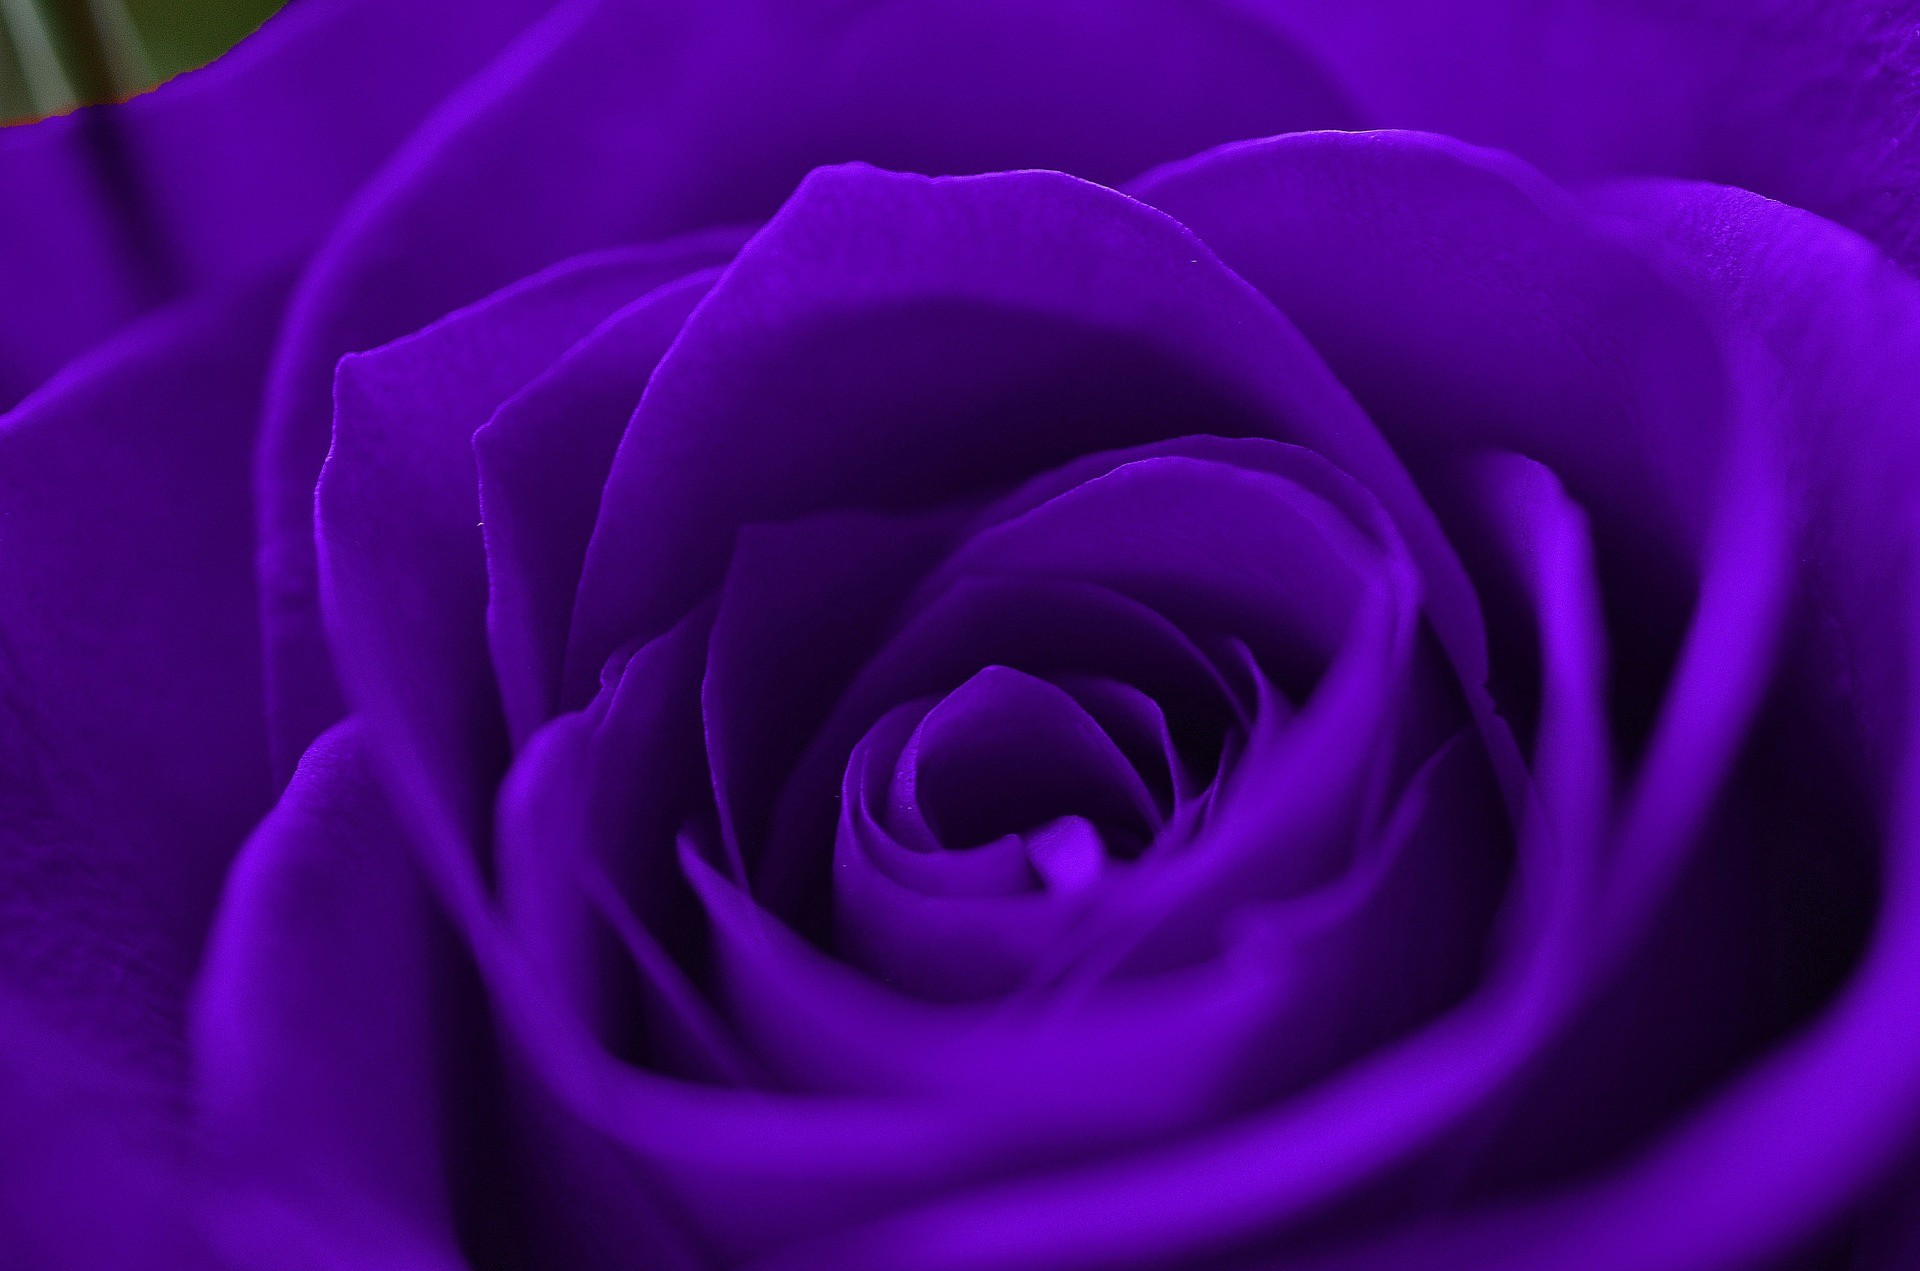 Download Purple And Green Wallpaper Gallery: Dark Purple Roses Wallpaper (46+ Images